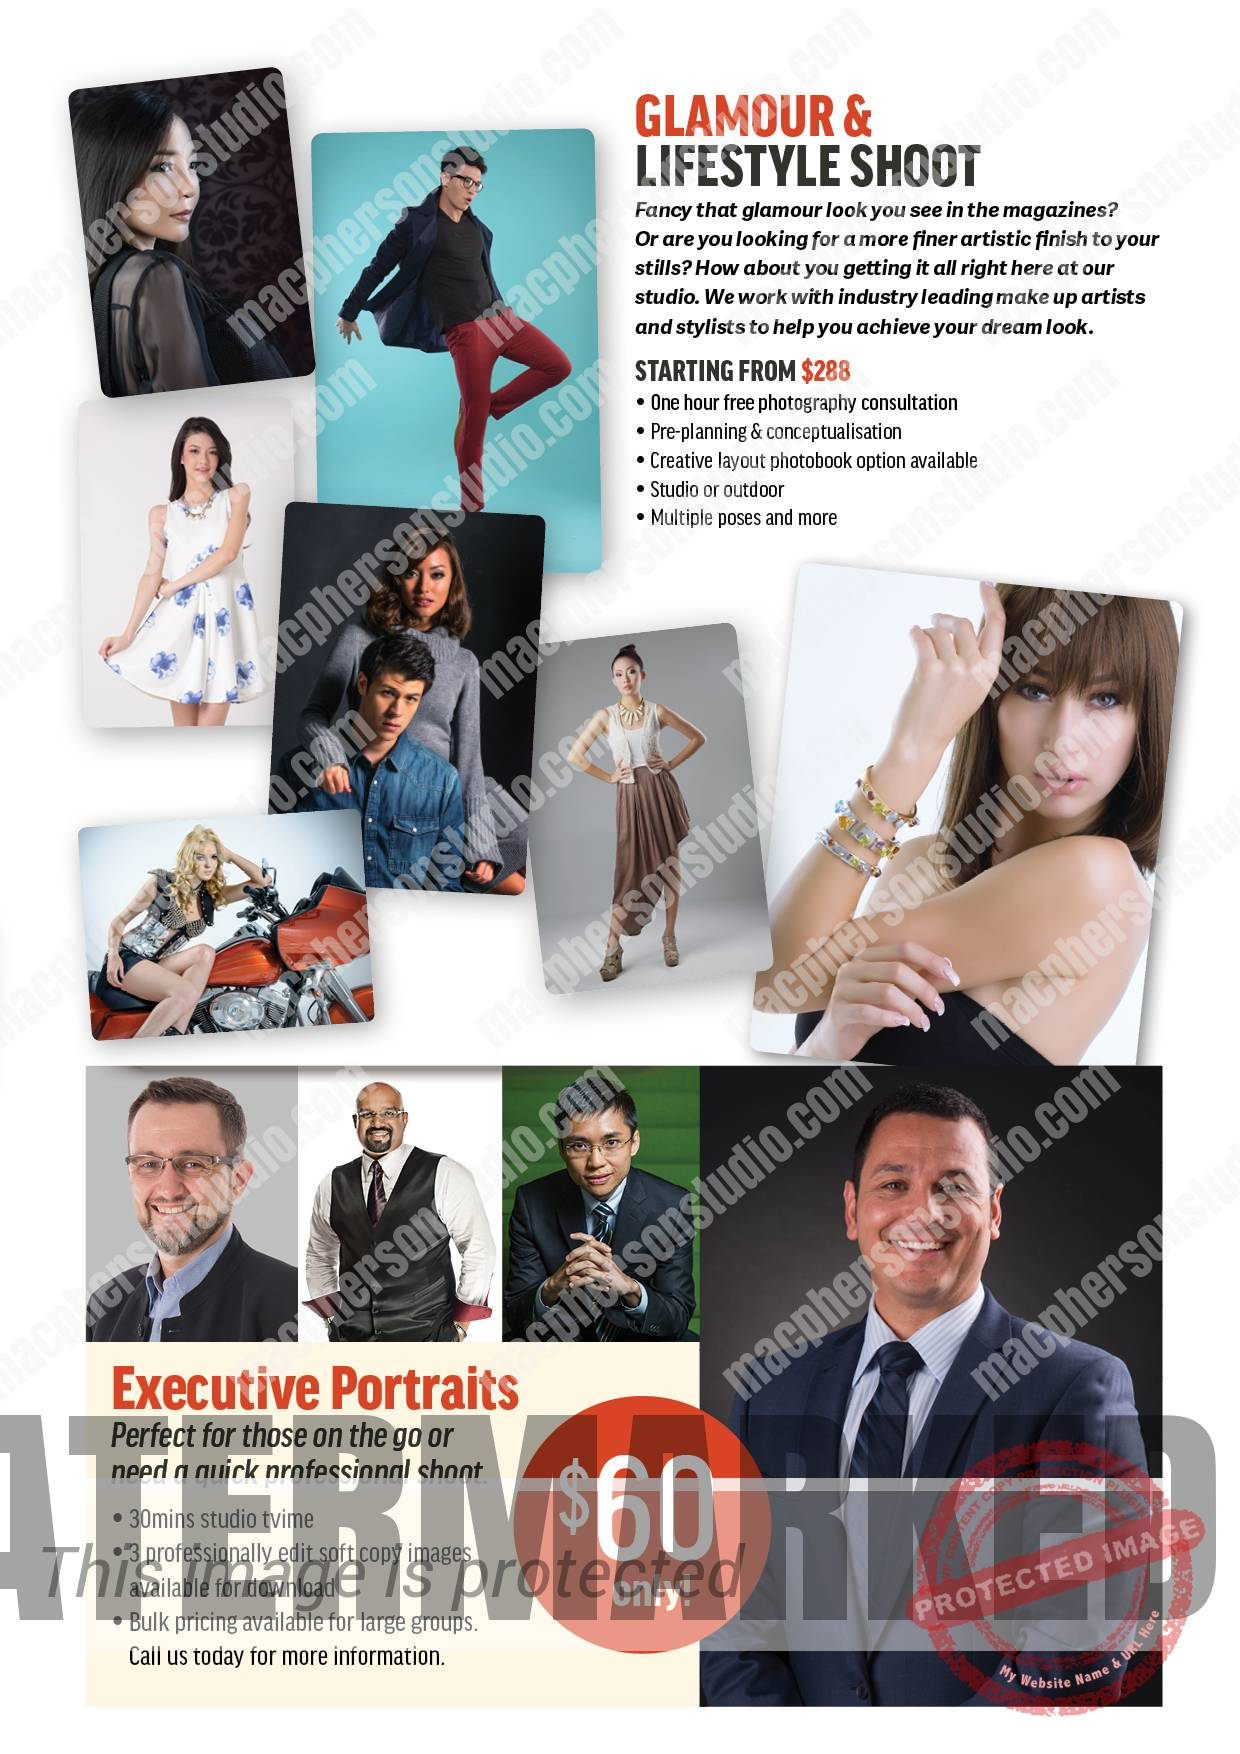 Glamour & Lifestyle, Executive Portraits at Macpherson Studio.